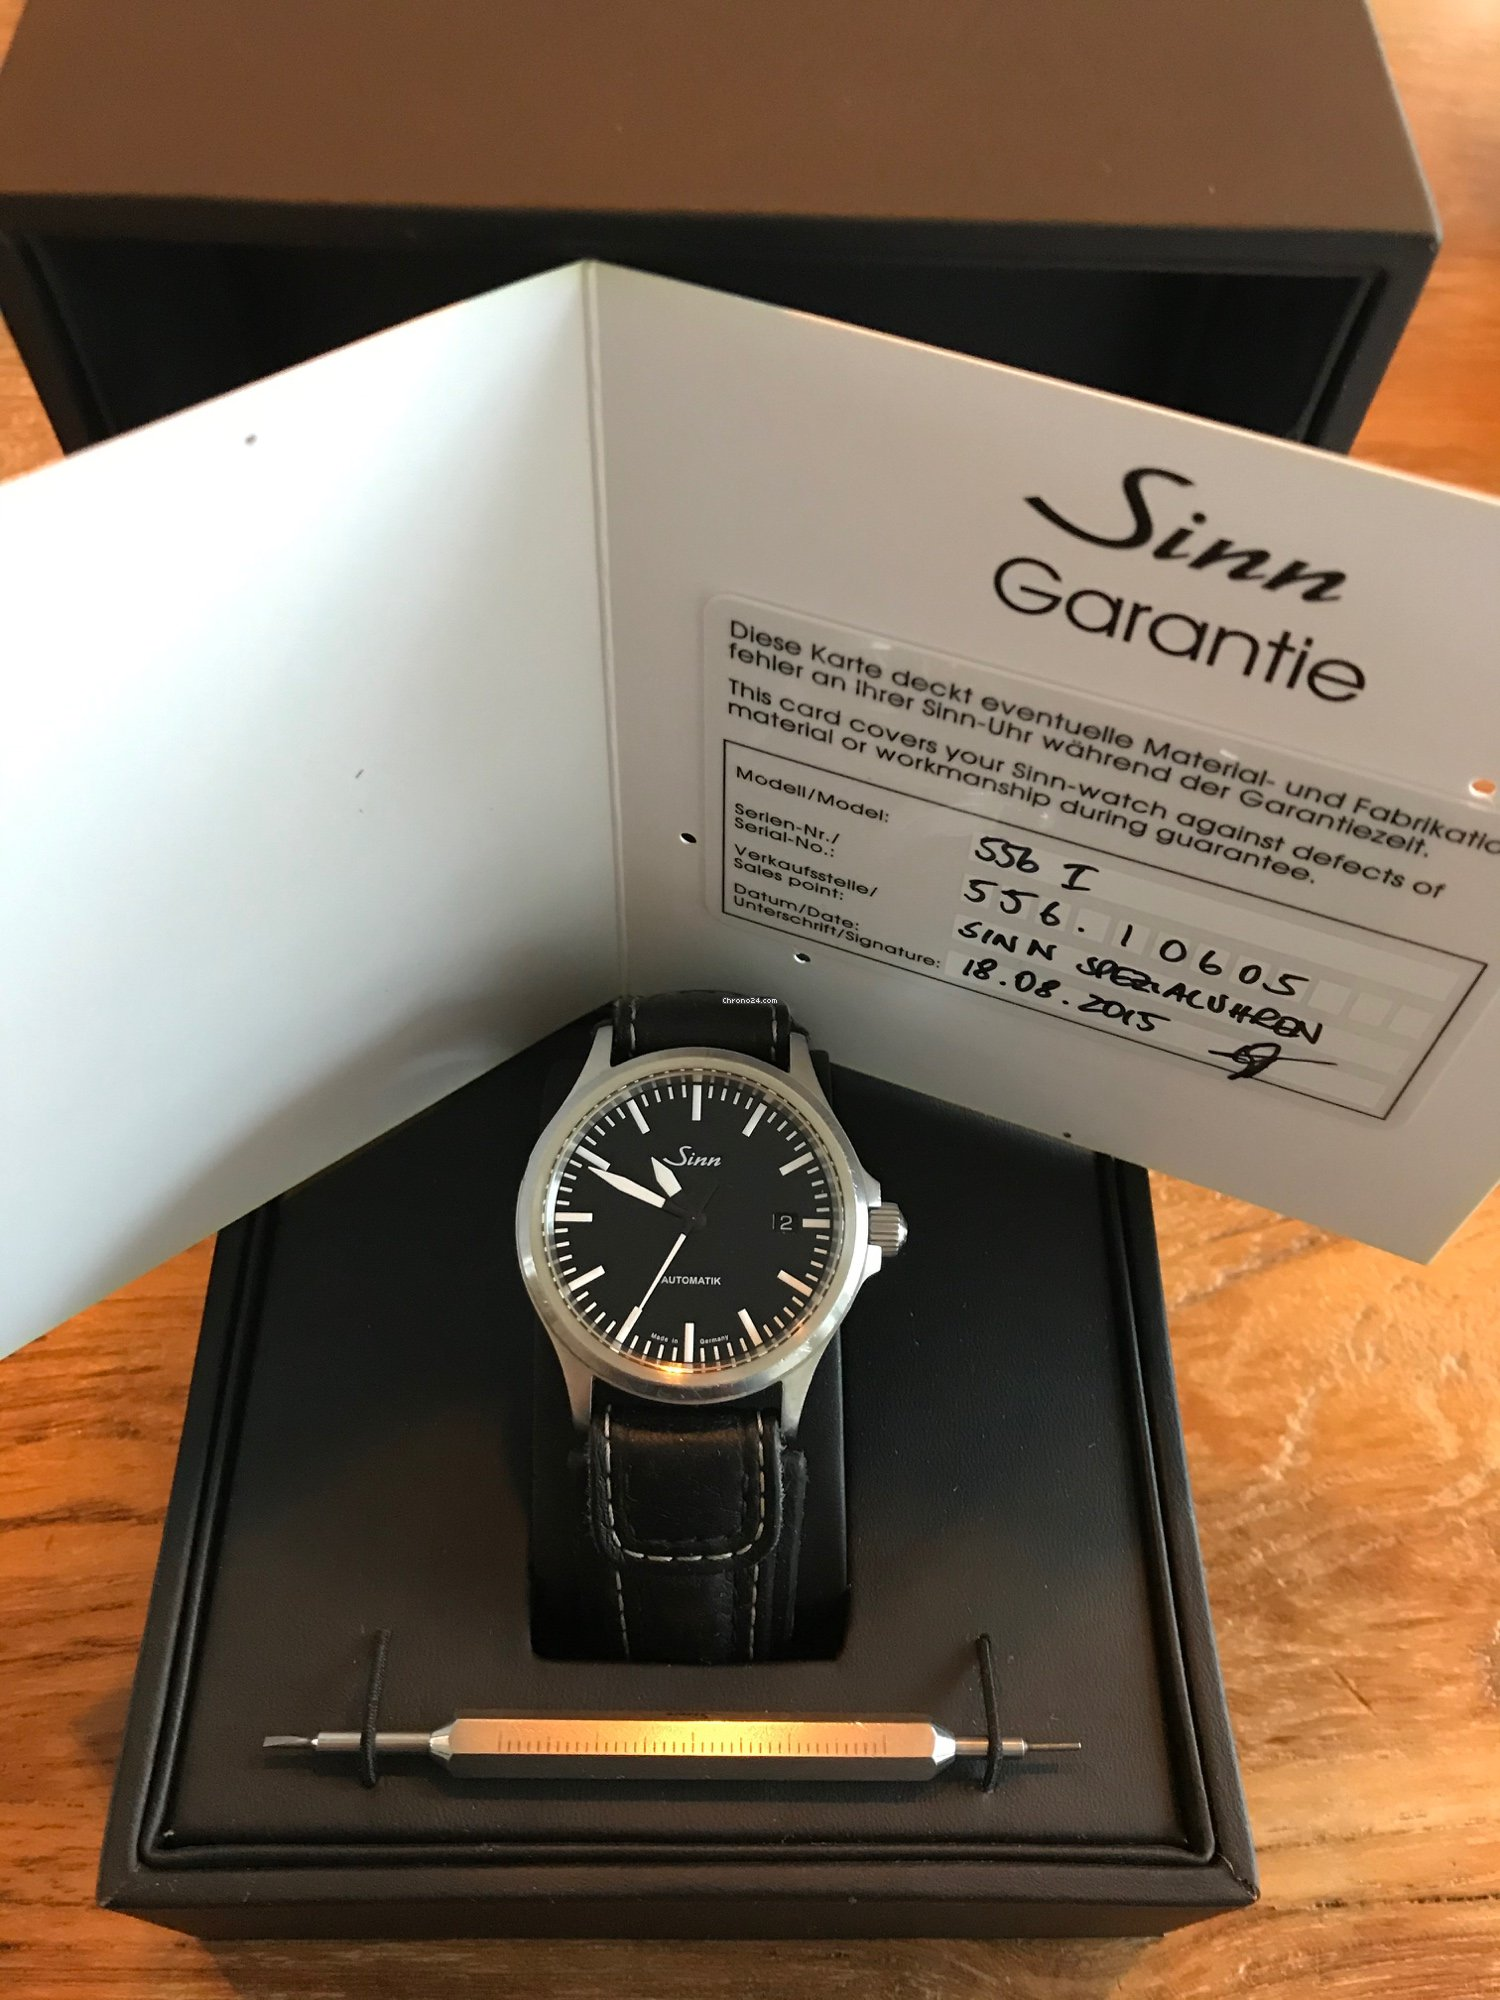 Sinn 556 I for £562 for sale from a Private Seller on Chrono24